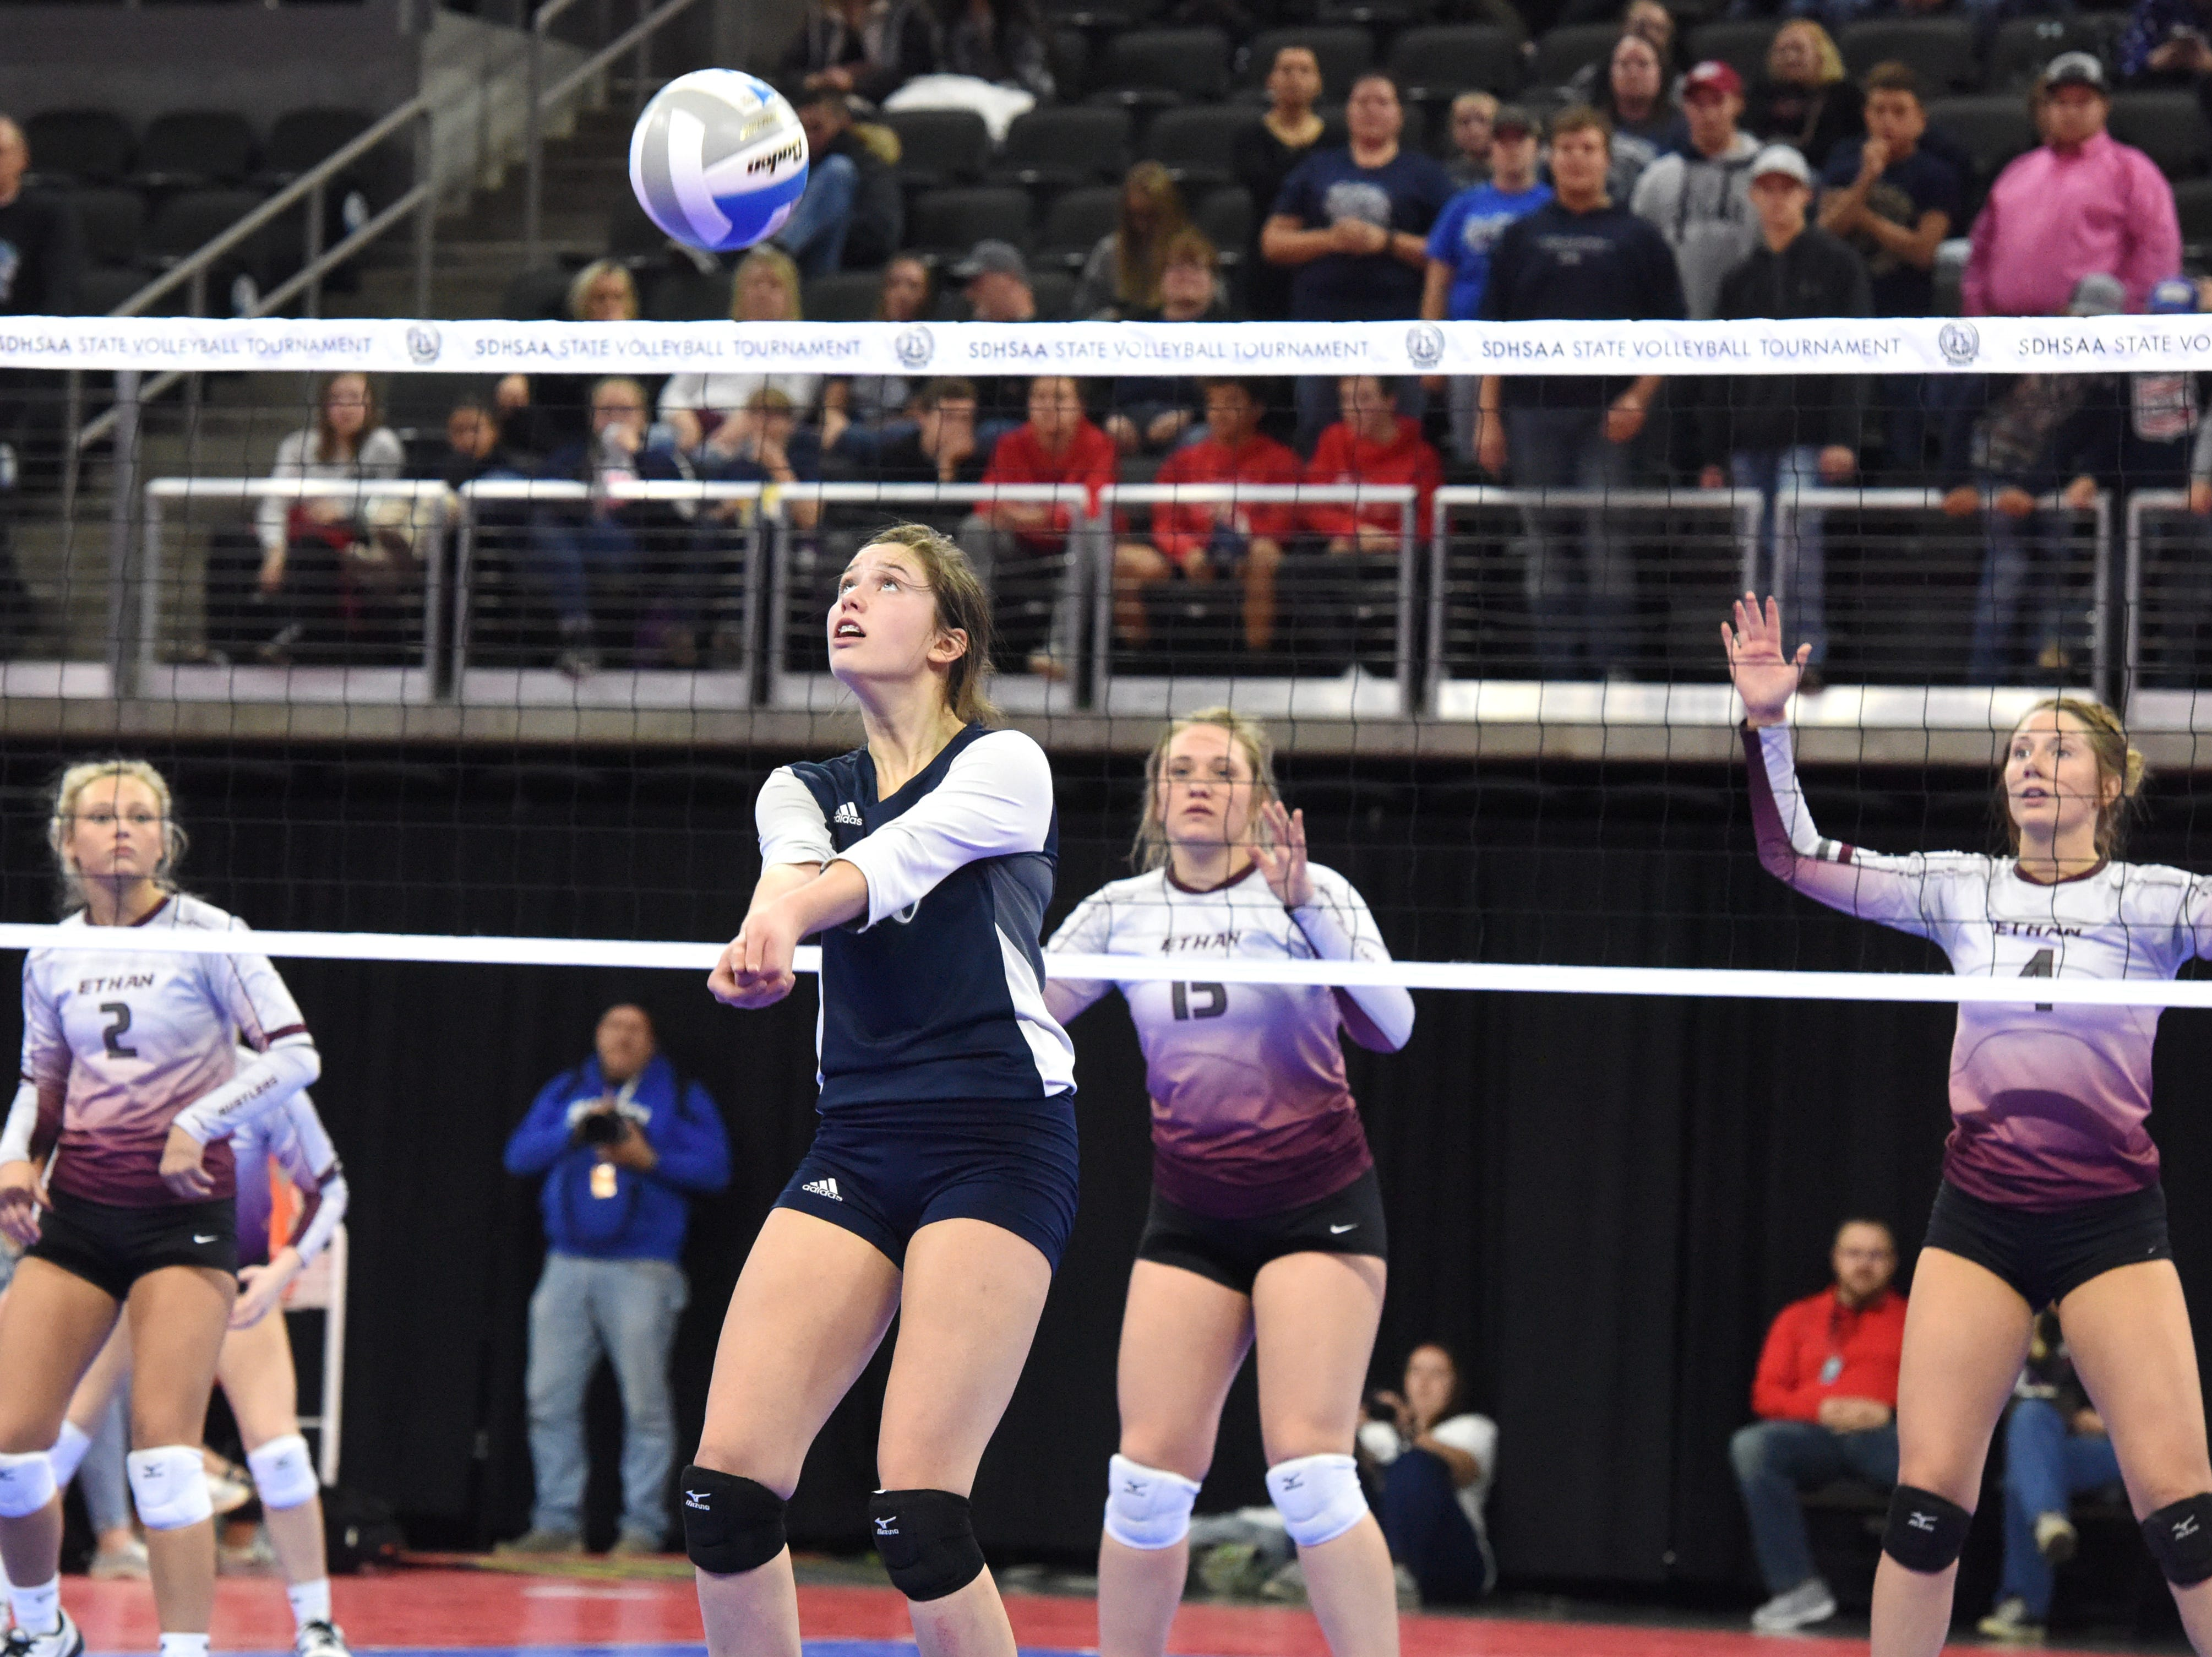 Burke's Bobbi Jo Wischmann bumps the ball during a match against Ethan, Friday, Nov. 16, 2018, at the Denny Sanford Premier Center in Sioux Falls, S.D.